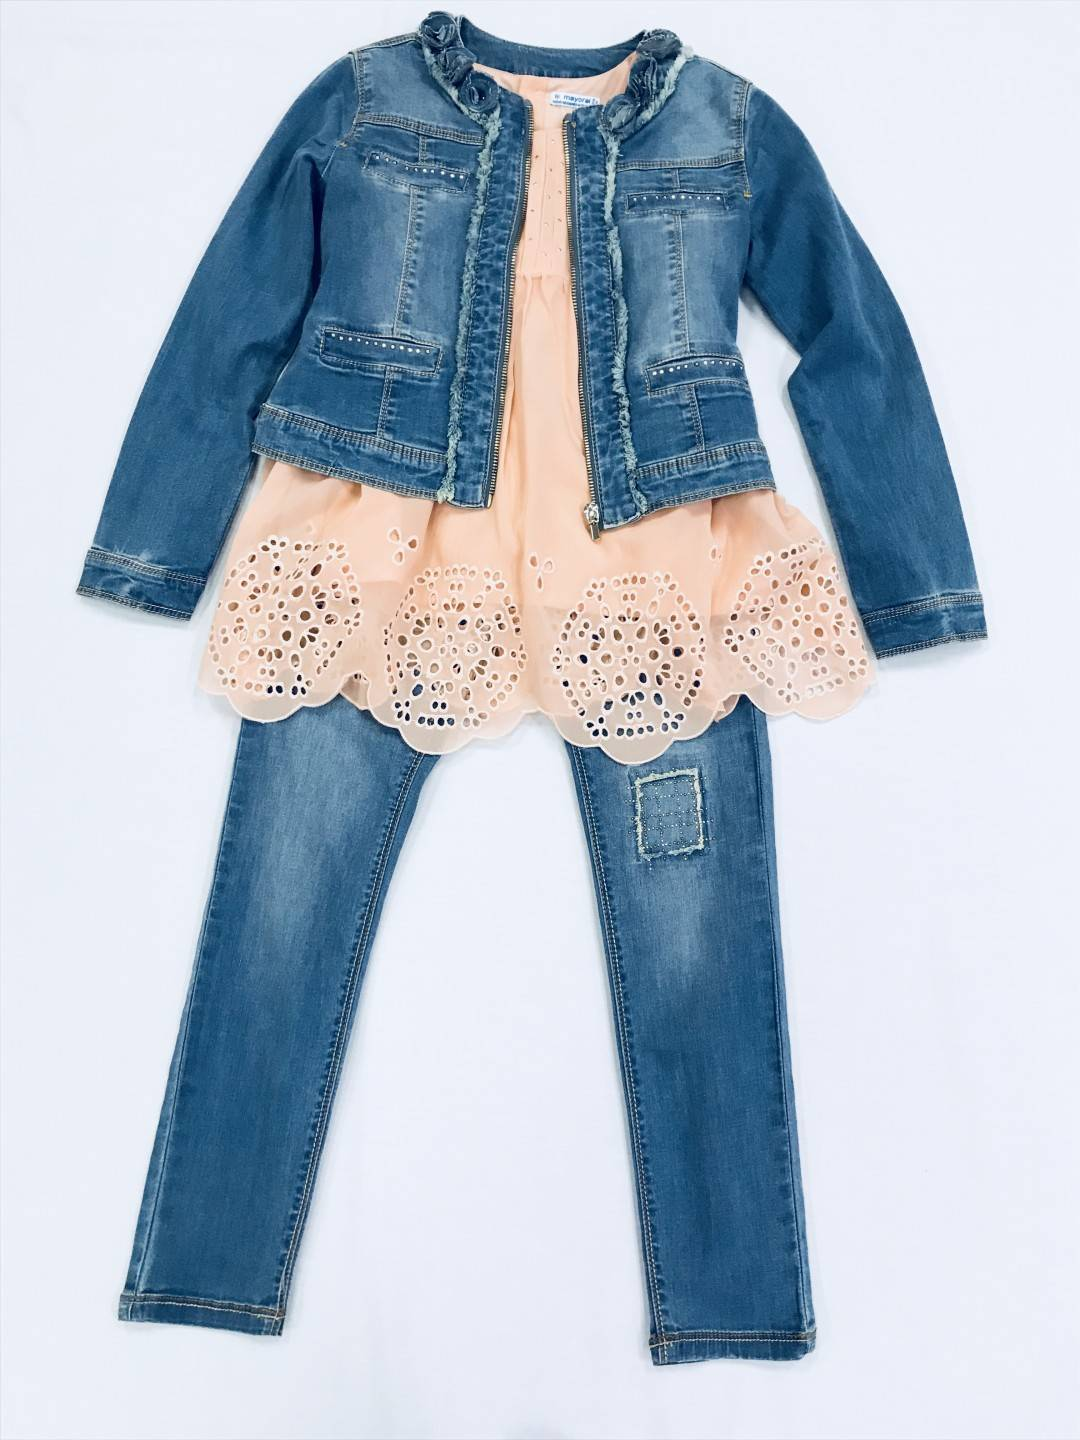 PINK TANK WITH JEAN JACKET AND PANT 3-PIECE SET SIZES 8-14